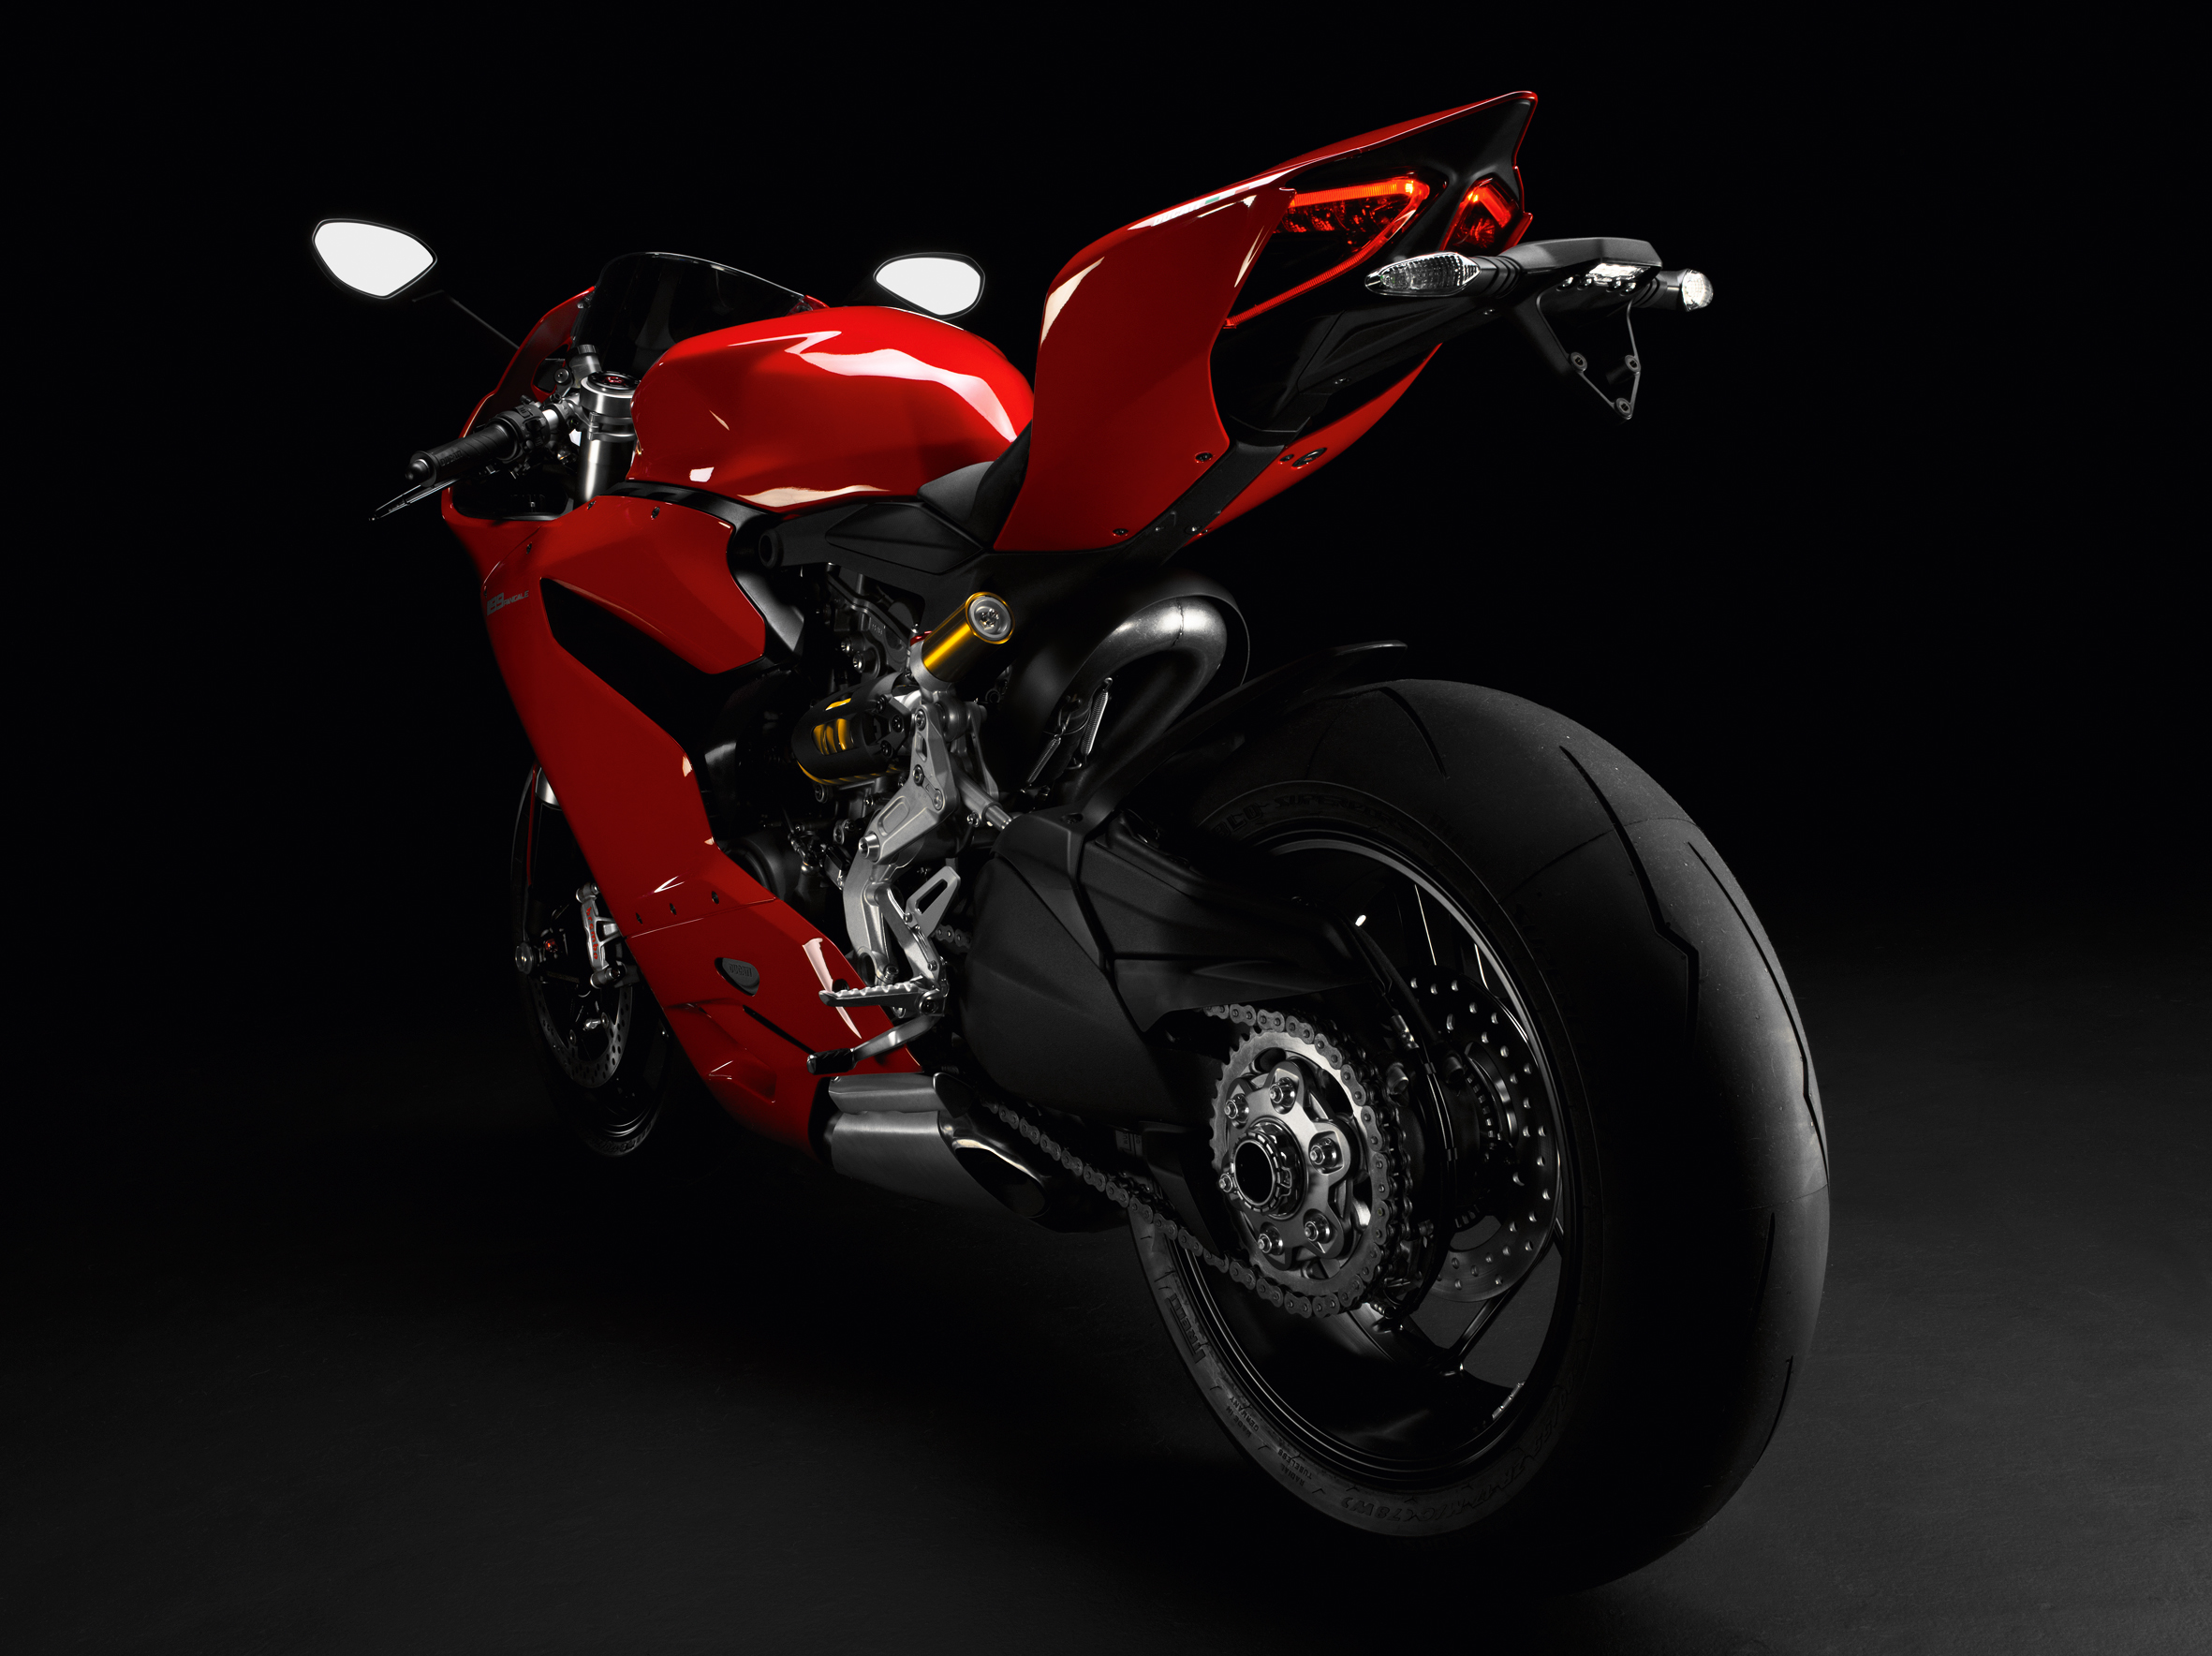 superbike_1199_panigale_s_06